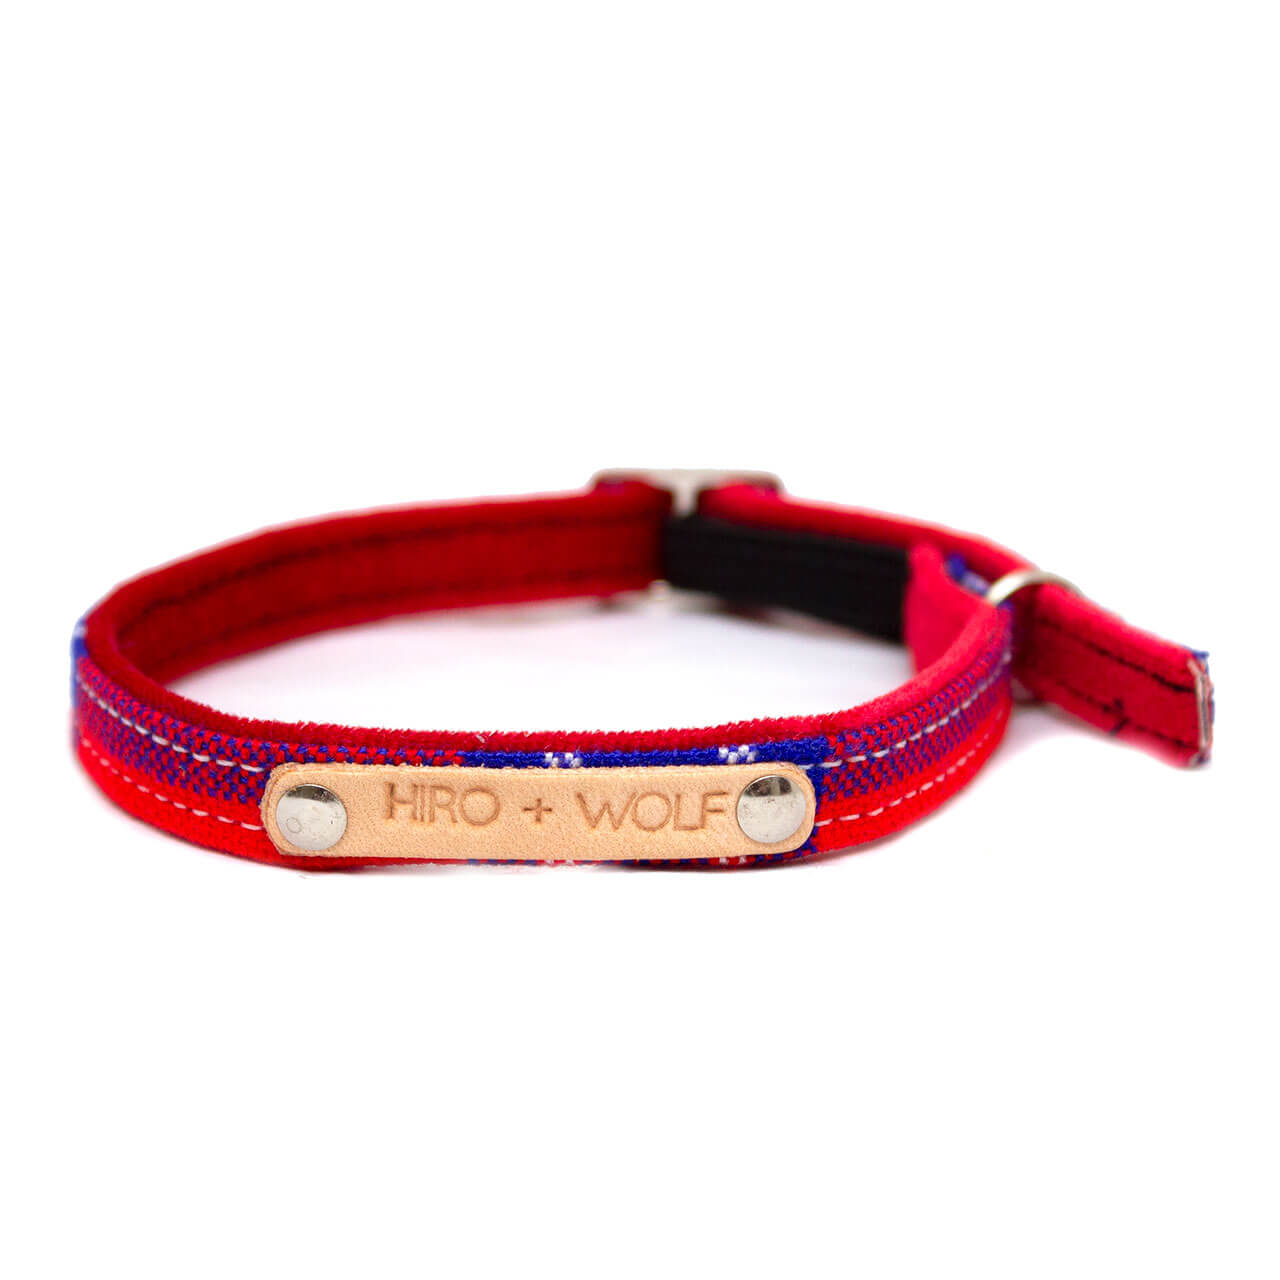 Hiro + Wolf - Shuka Red Cat Collar